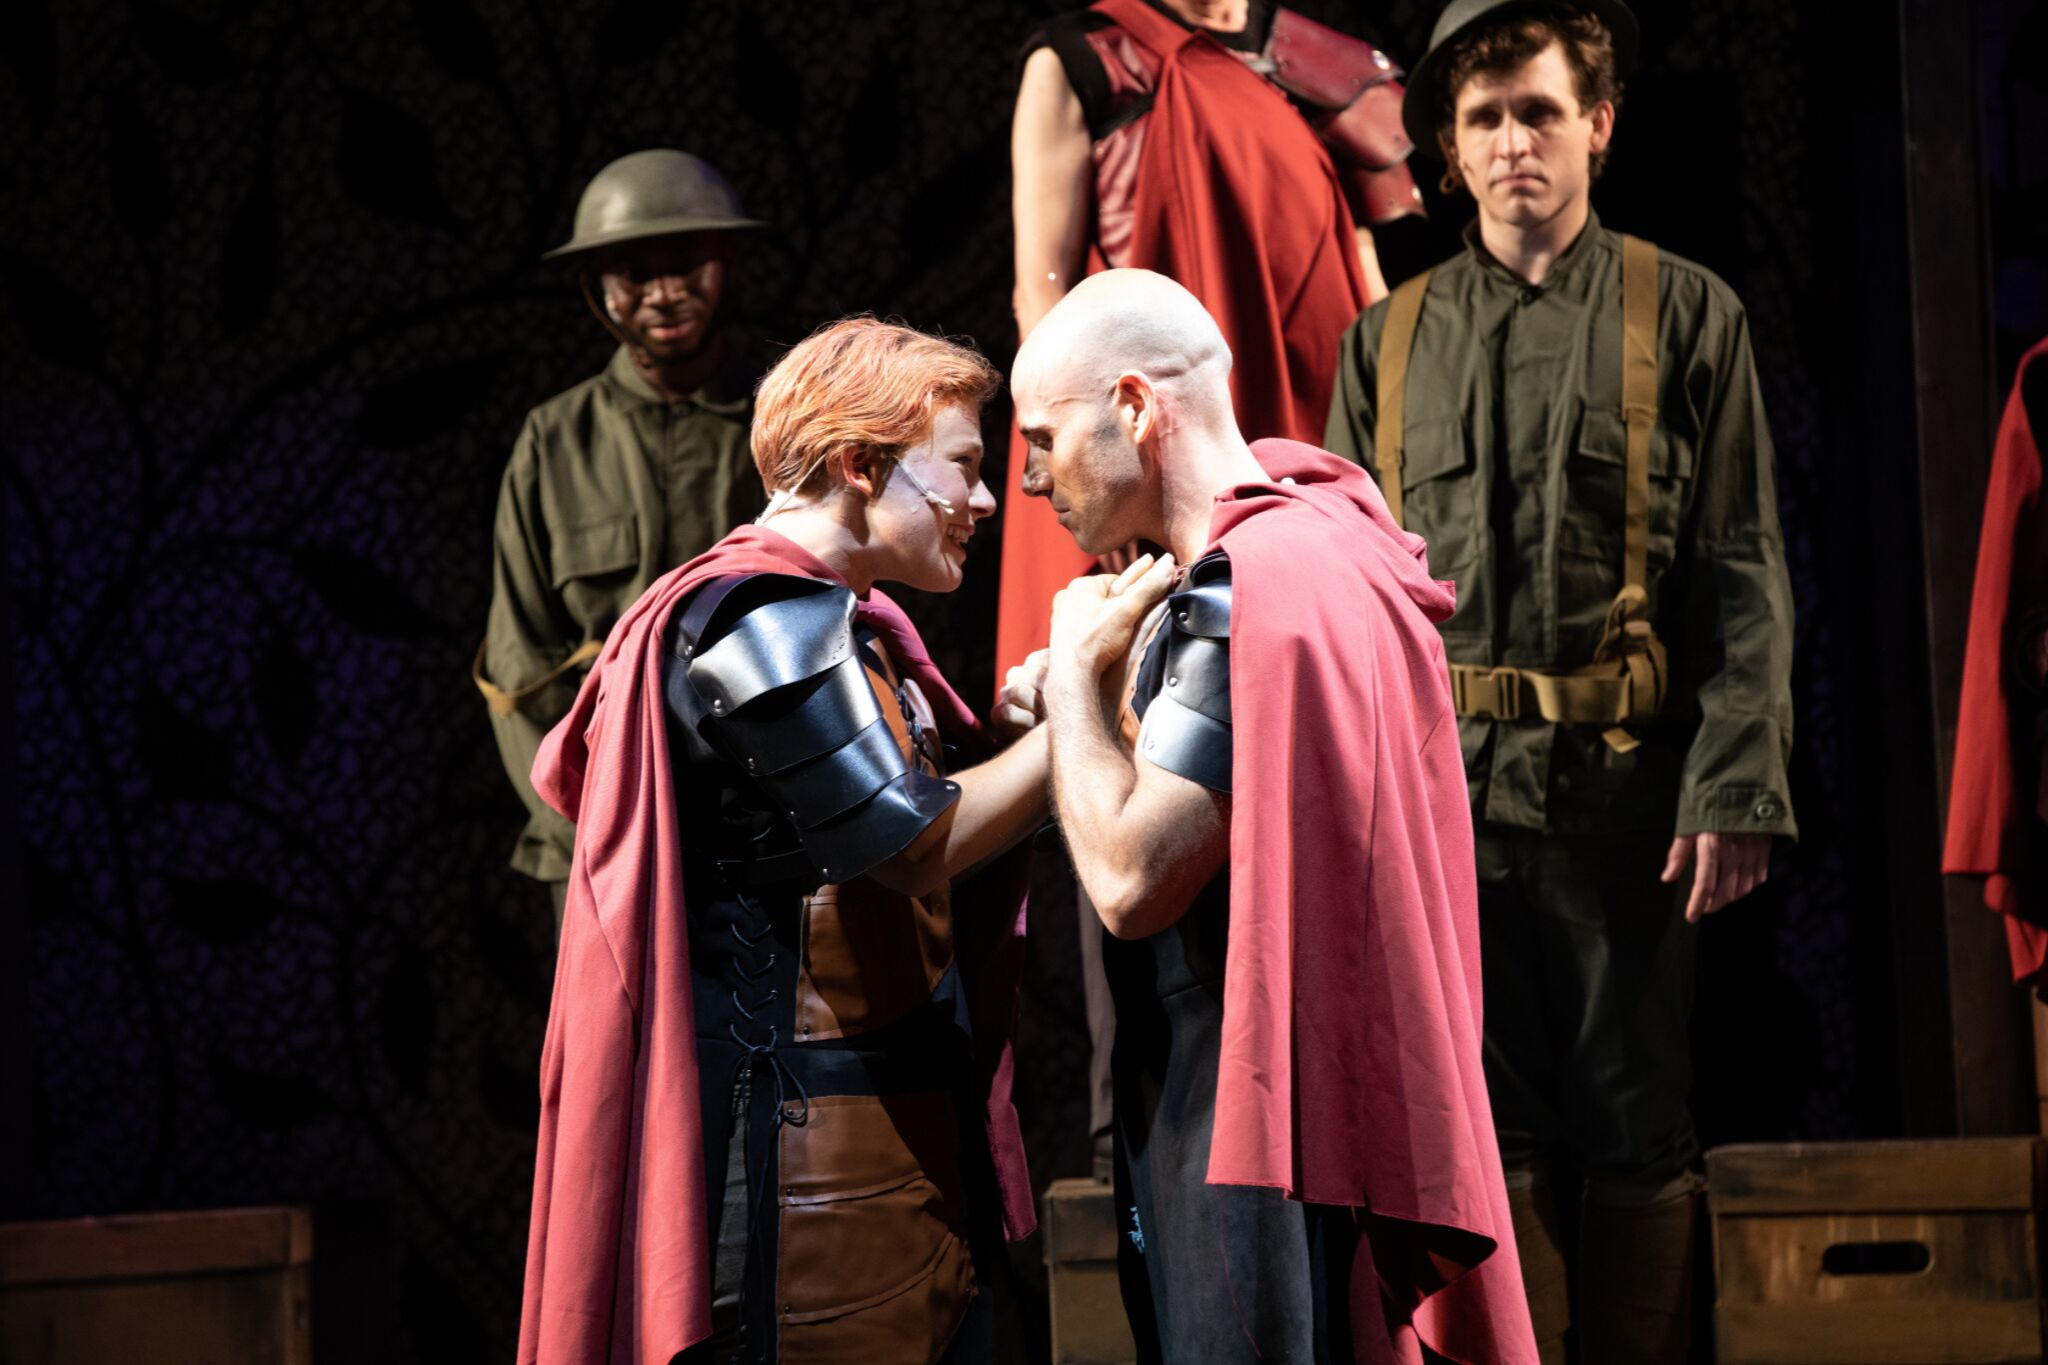 Nigel Richards (Soldier), Nora Eschenheimer (Imogen), Daniel Duque-Estrada (Posthumus) and John Hardin (Soldier) in Cymbeline, Shakespeare on the Common 2019-Photo by Evgenia Eliseeva